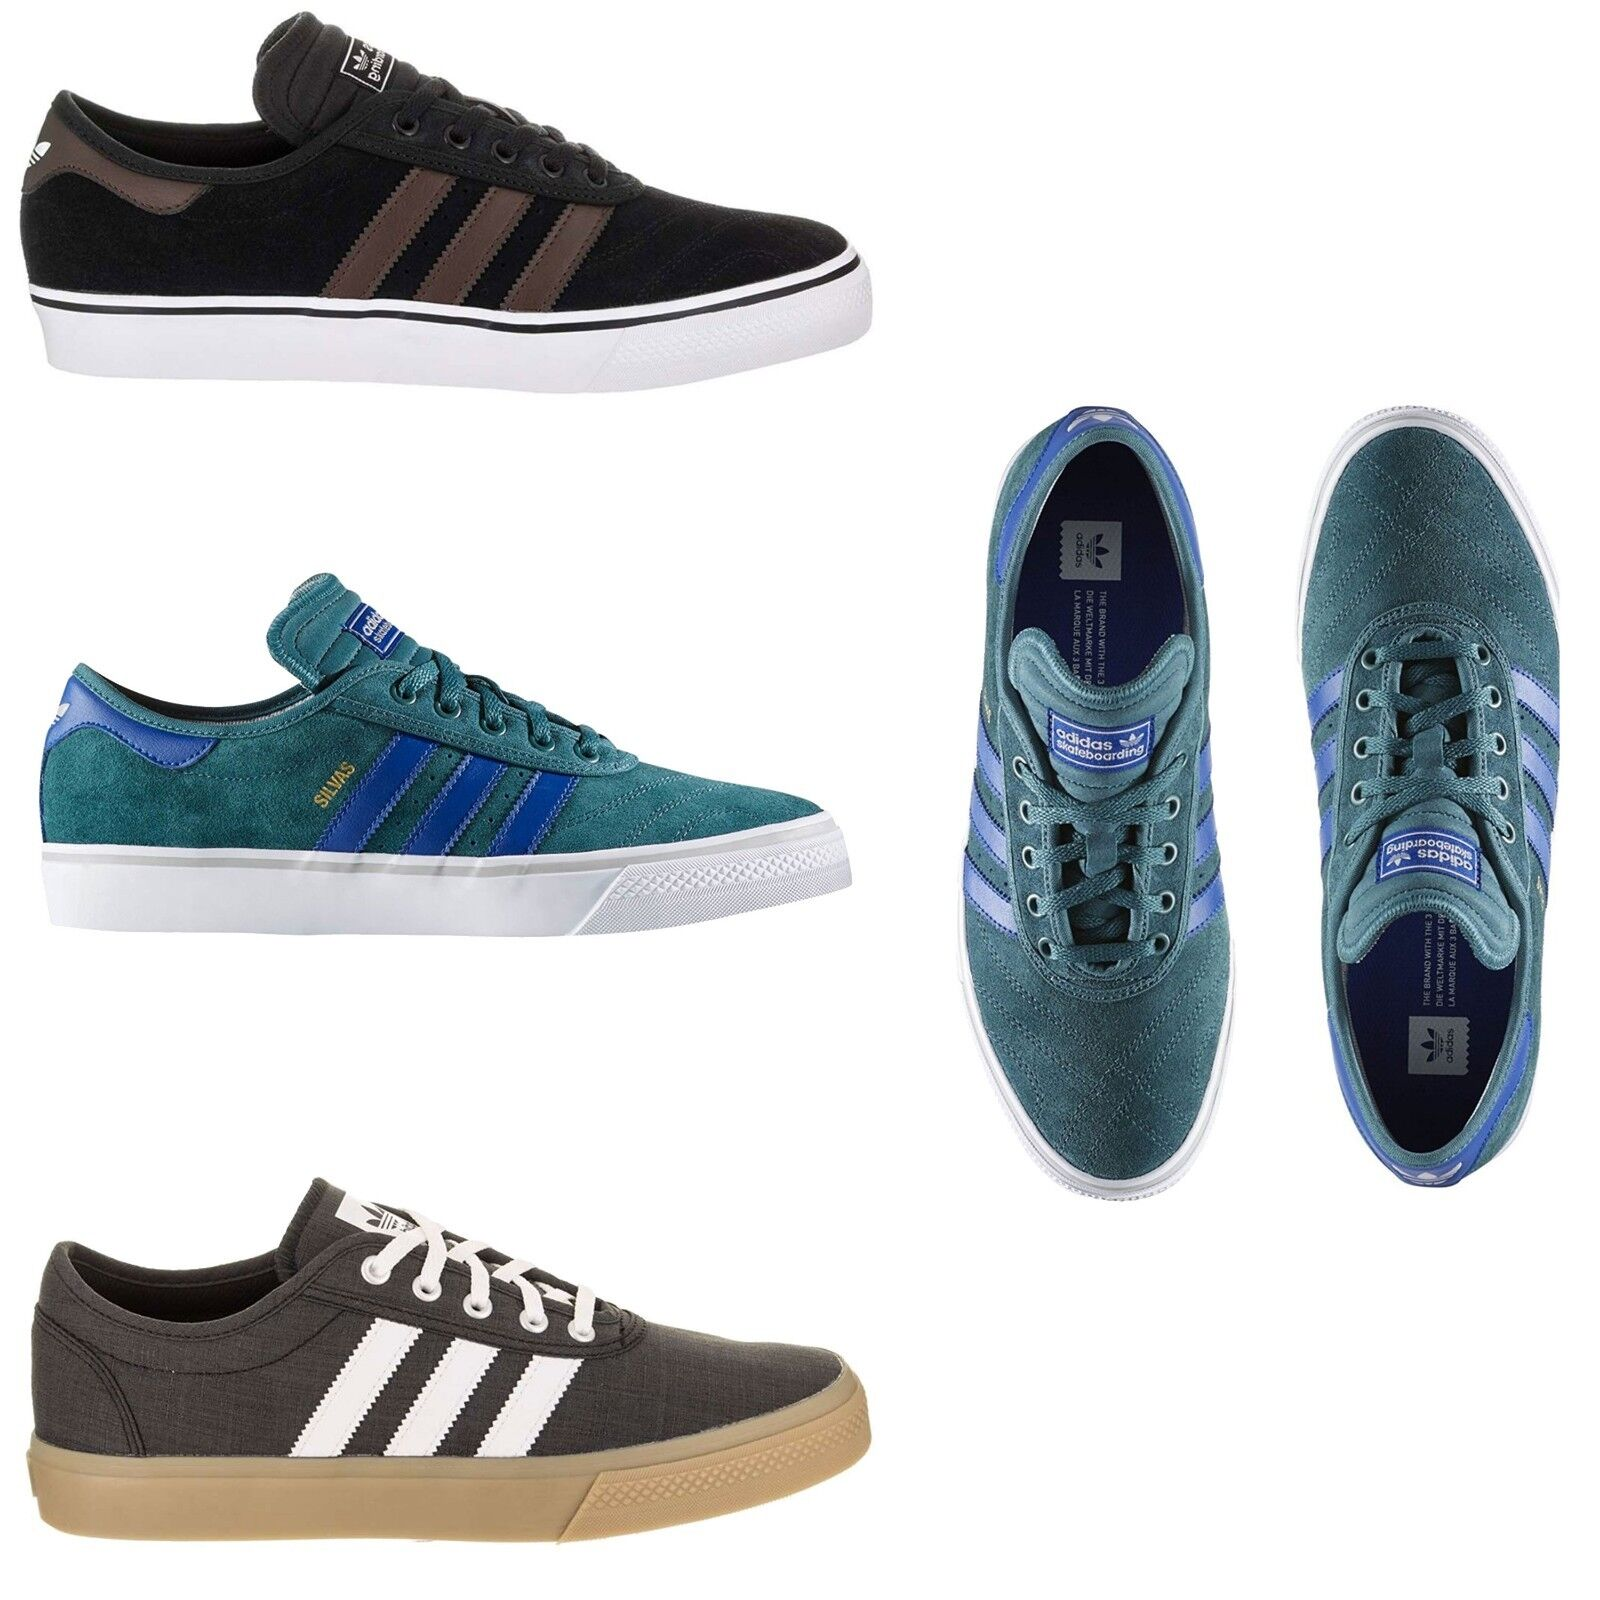 NEW SkateBoard Adidas Men's ADI EASE PREMIERE ADV SkateBoard NEW Shoes Suede Canvas Sneakers 3e87df